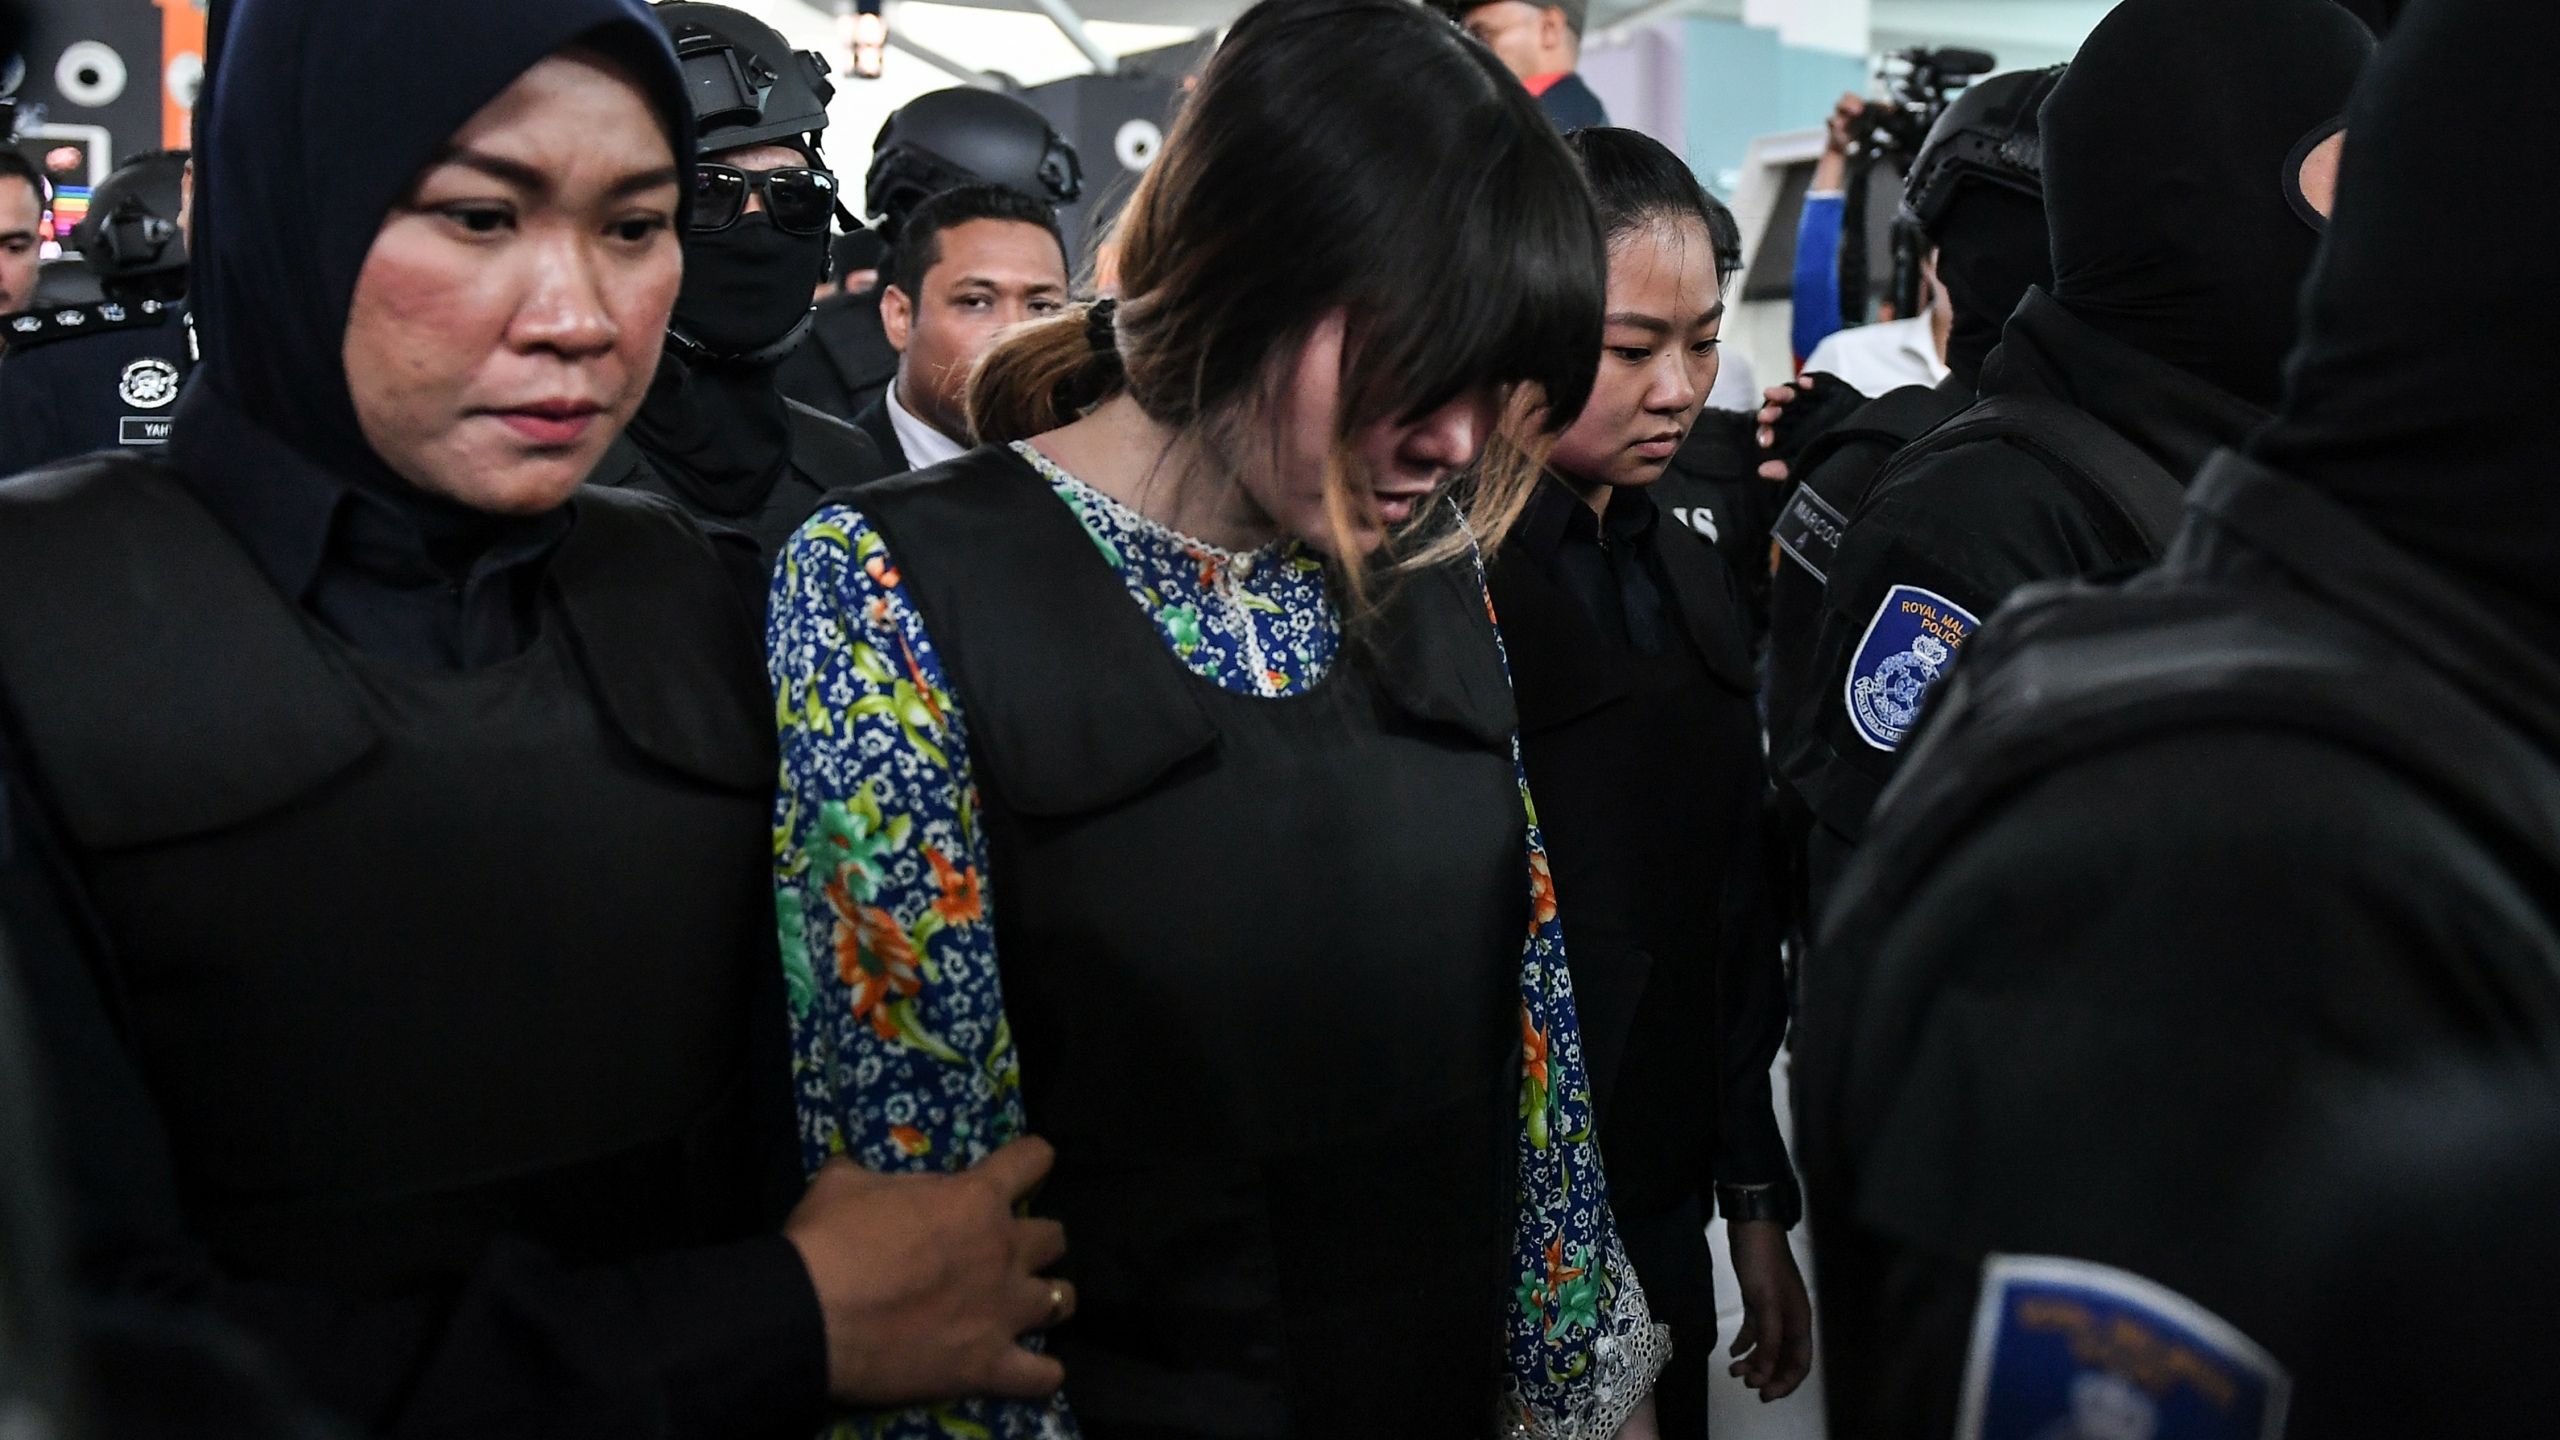 Vietnamese defendant Doan Thi Huong (C) is escorted by police personnel towards the low-cost carrier Kuala Lumpur International Airport 2 (KLIA2) in Sepang during a visit to the scene of the murder as part of the Shah Alam High Court trial process on October 24, 2017, for her alleged role in the assassination of Kim Jong-Nam. (Credit: Mohd Rasfan/AFP/Getty Images)